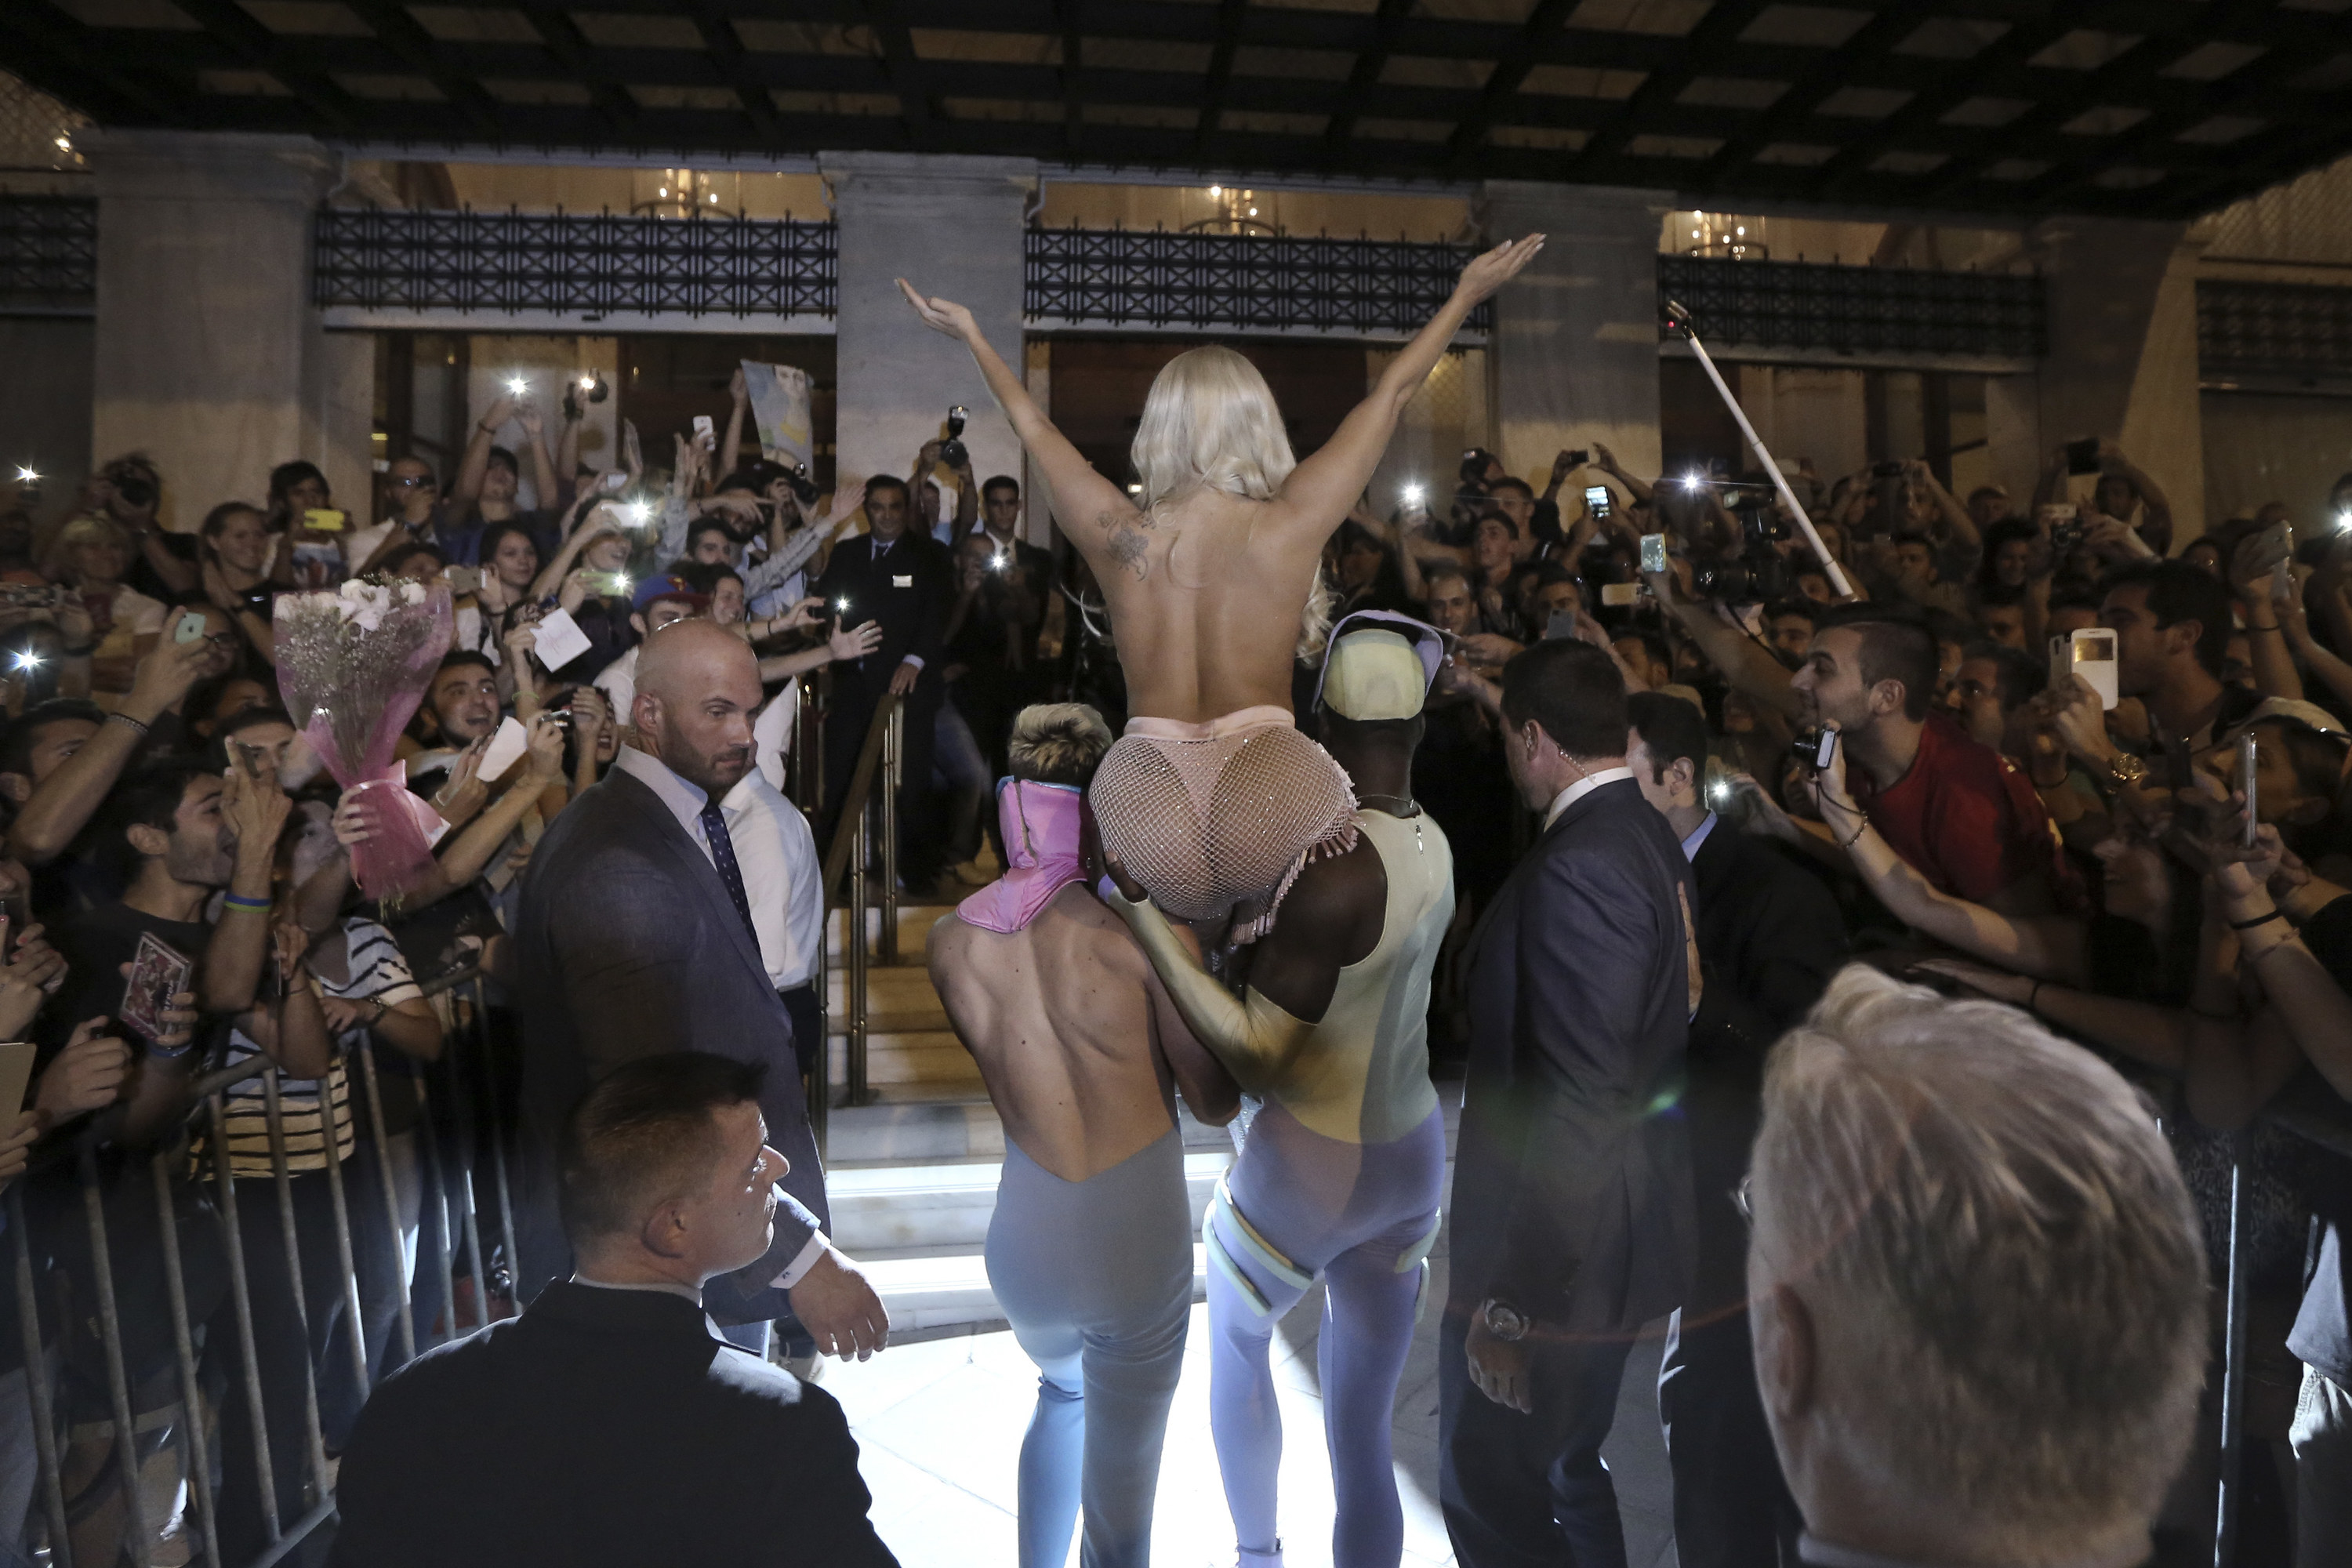 A back view of Gaga doin a V with her arms